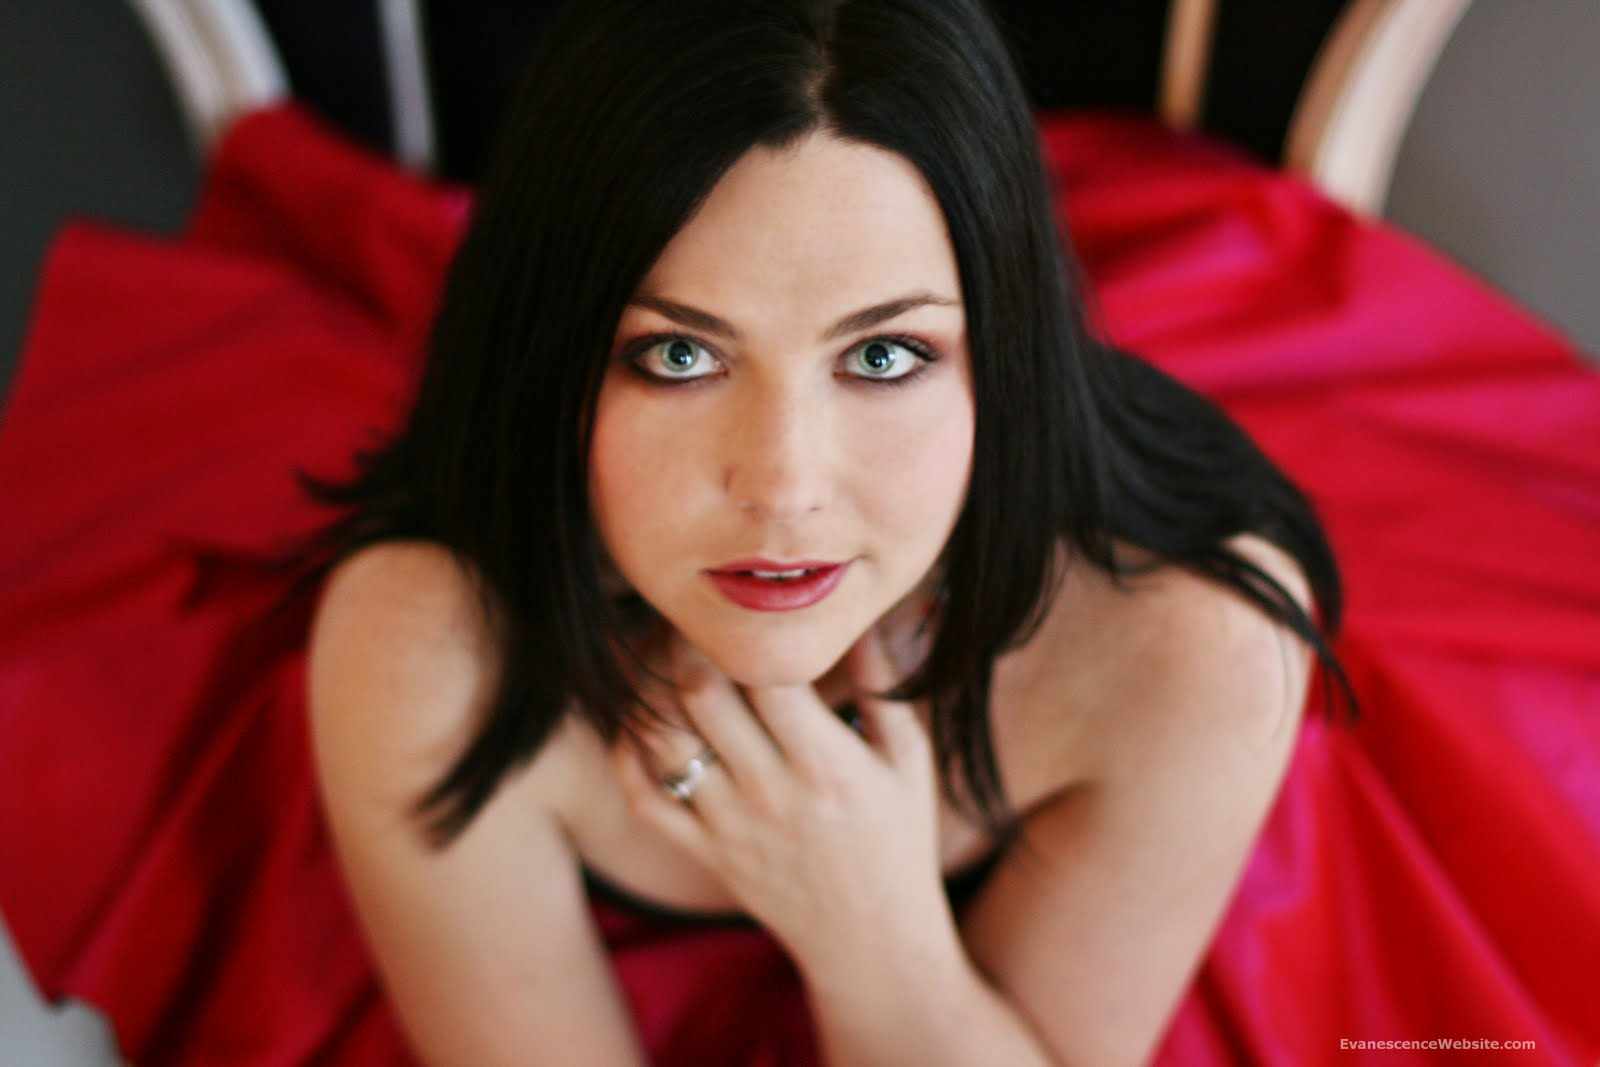 Amy Lee Releases More Information on Aftermath Music News 1600x1067